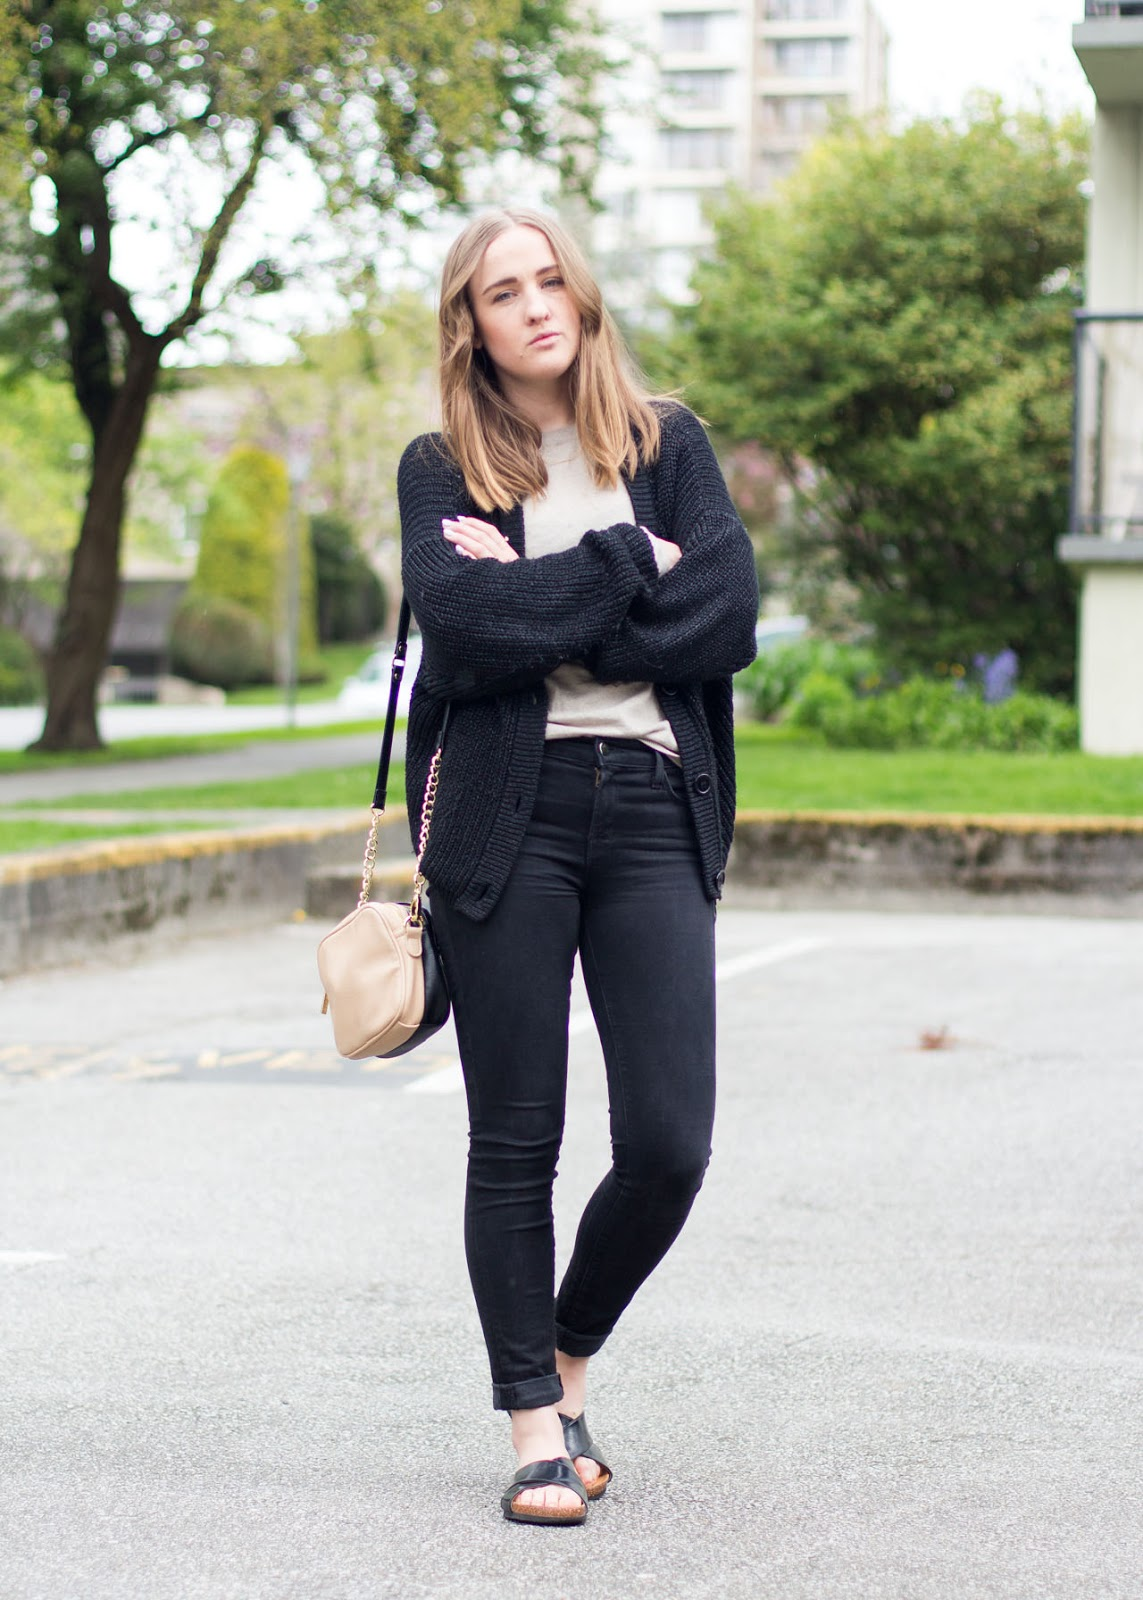 Light Spring layers in Vancouver - Fashion Blogger Outfit